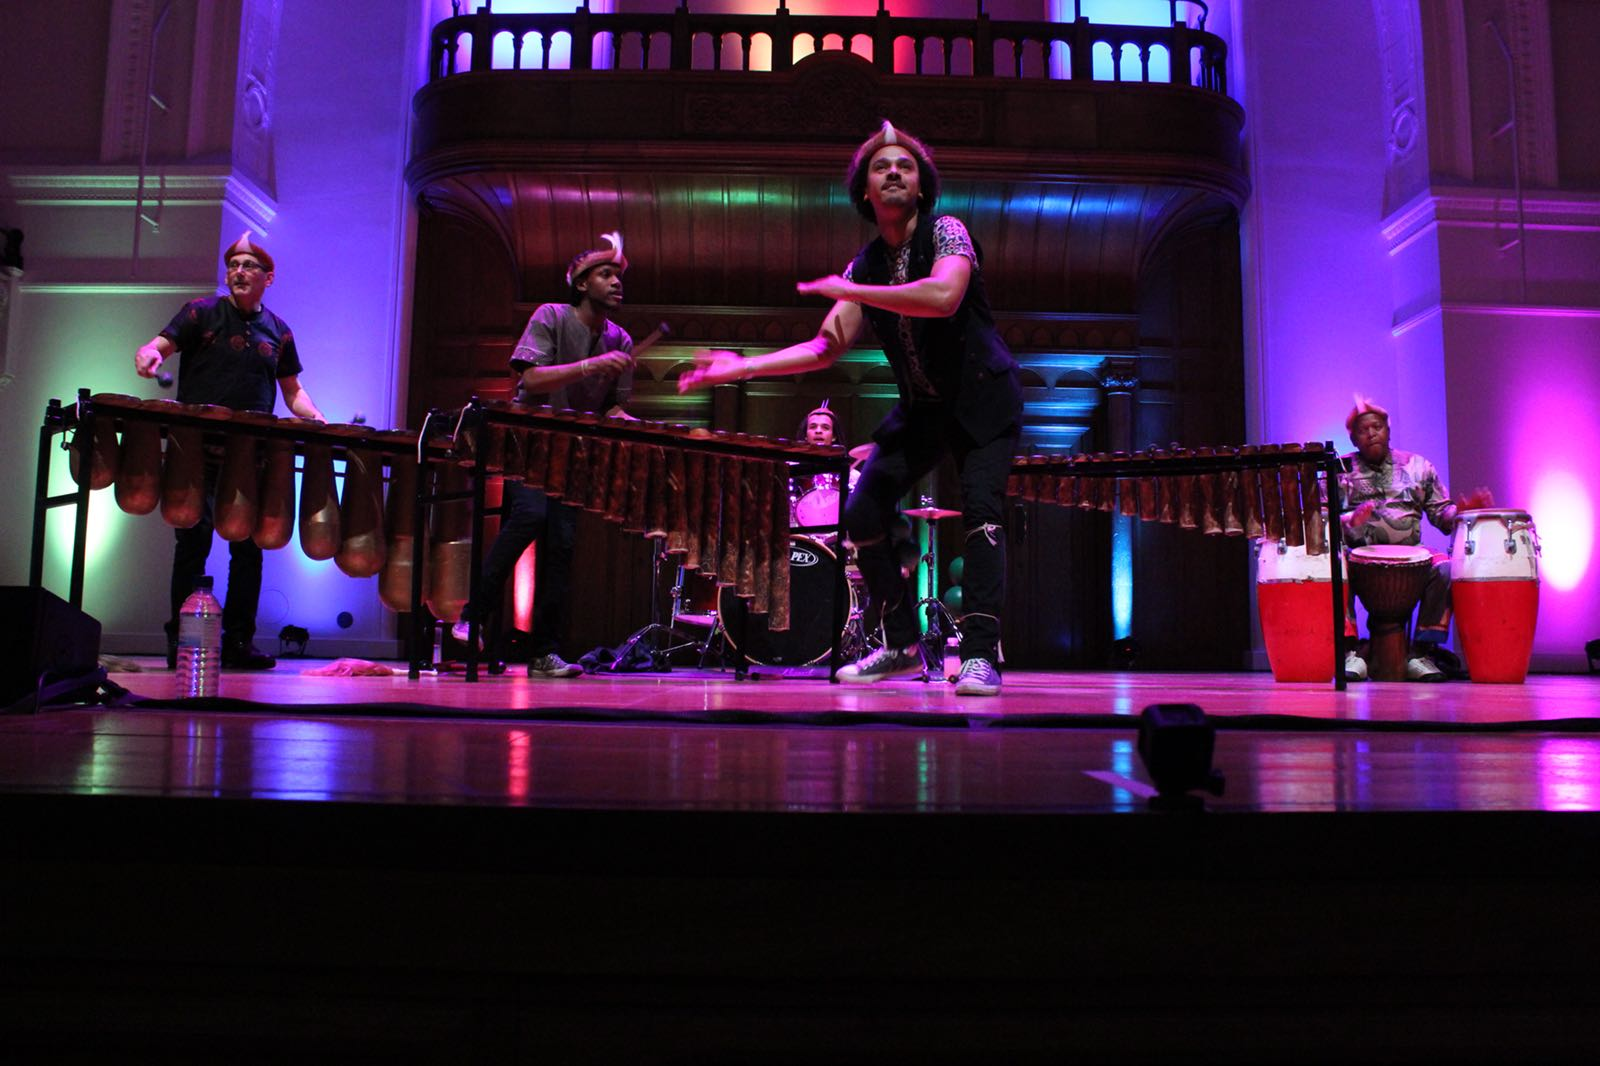 Cadogan Hall London - Panafrik - Otto Gumaelius & Taste of Southern Africa Marimba Band 2.JPG